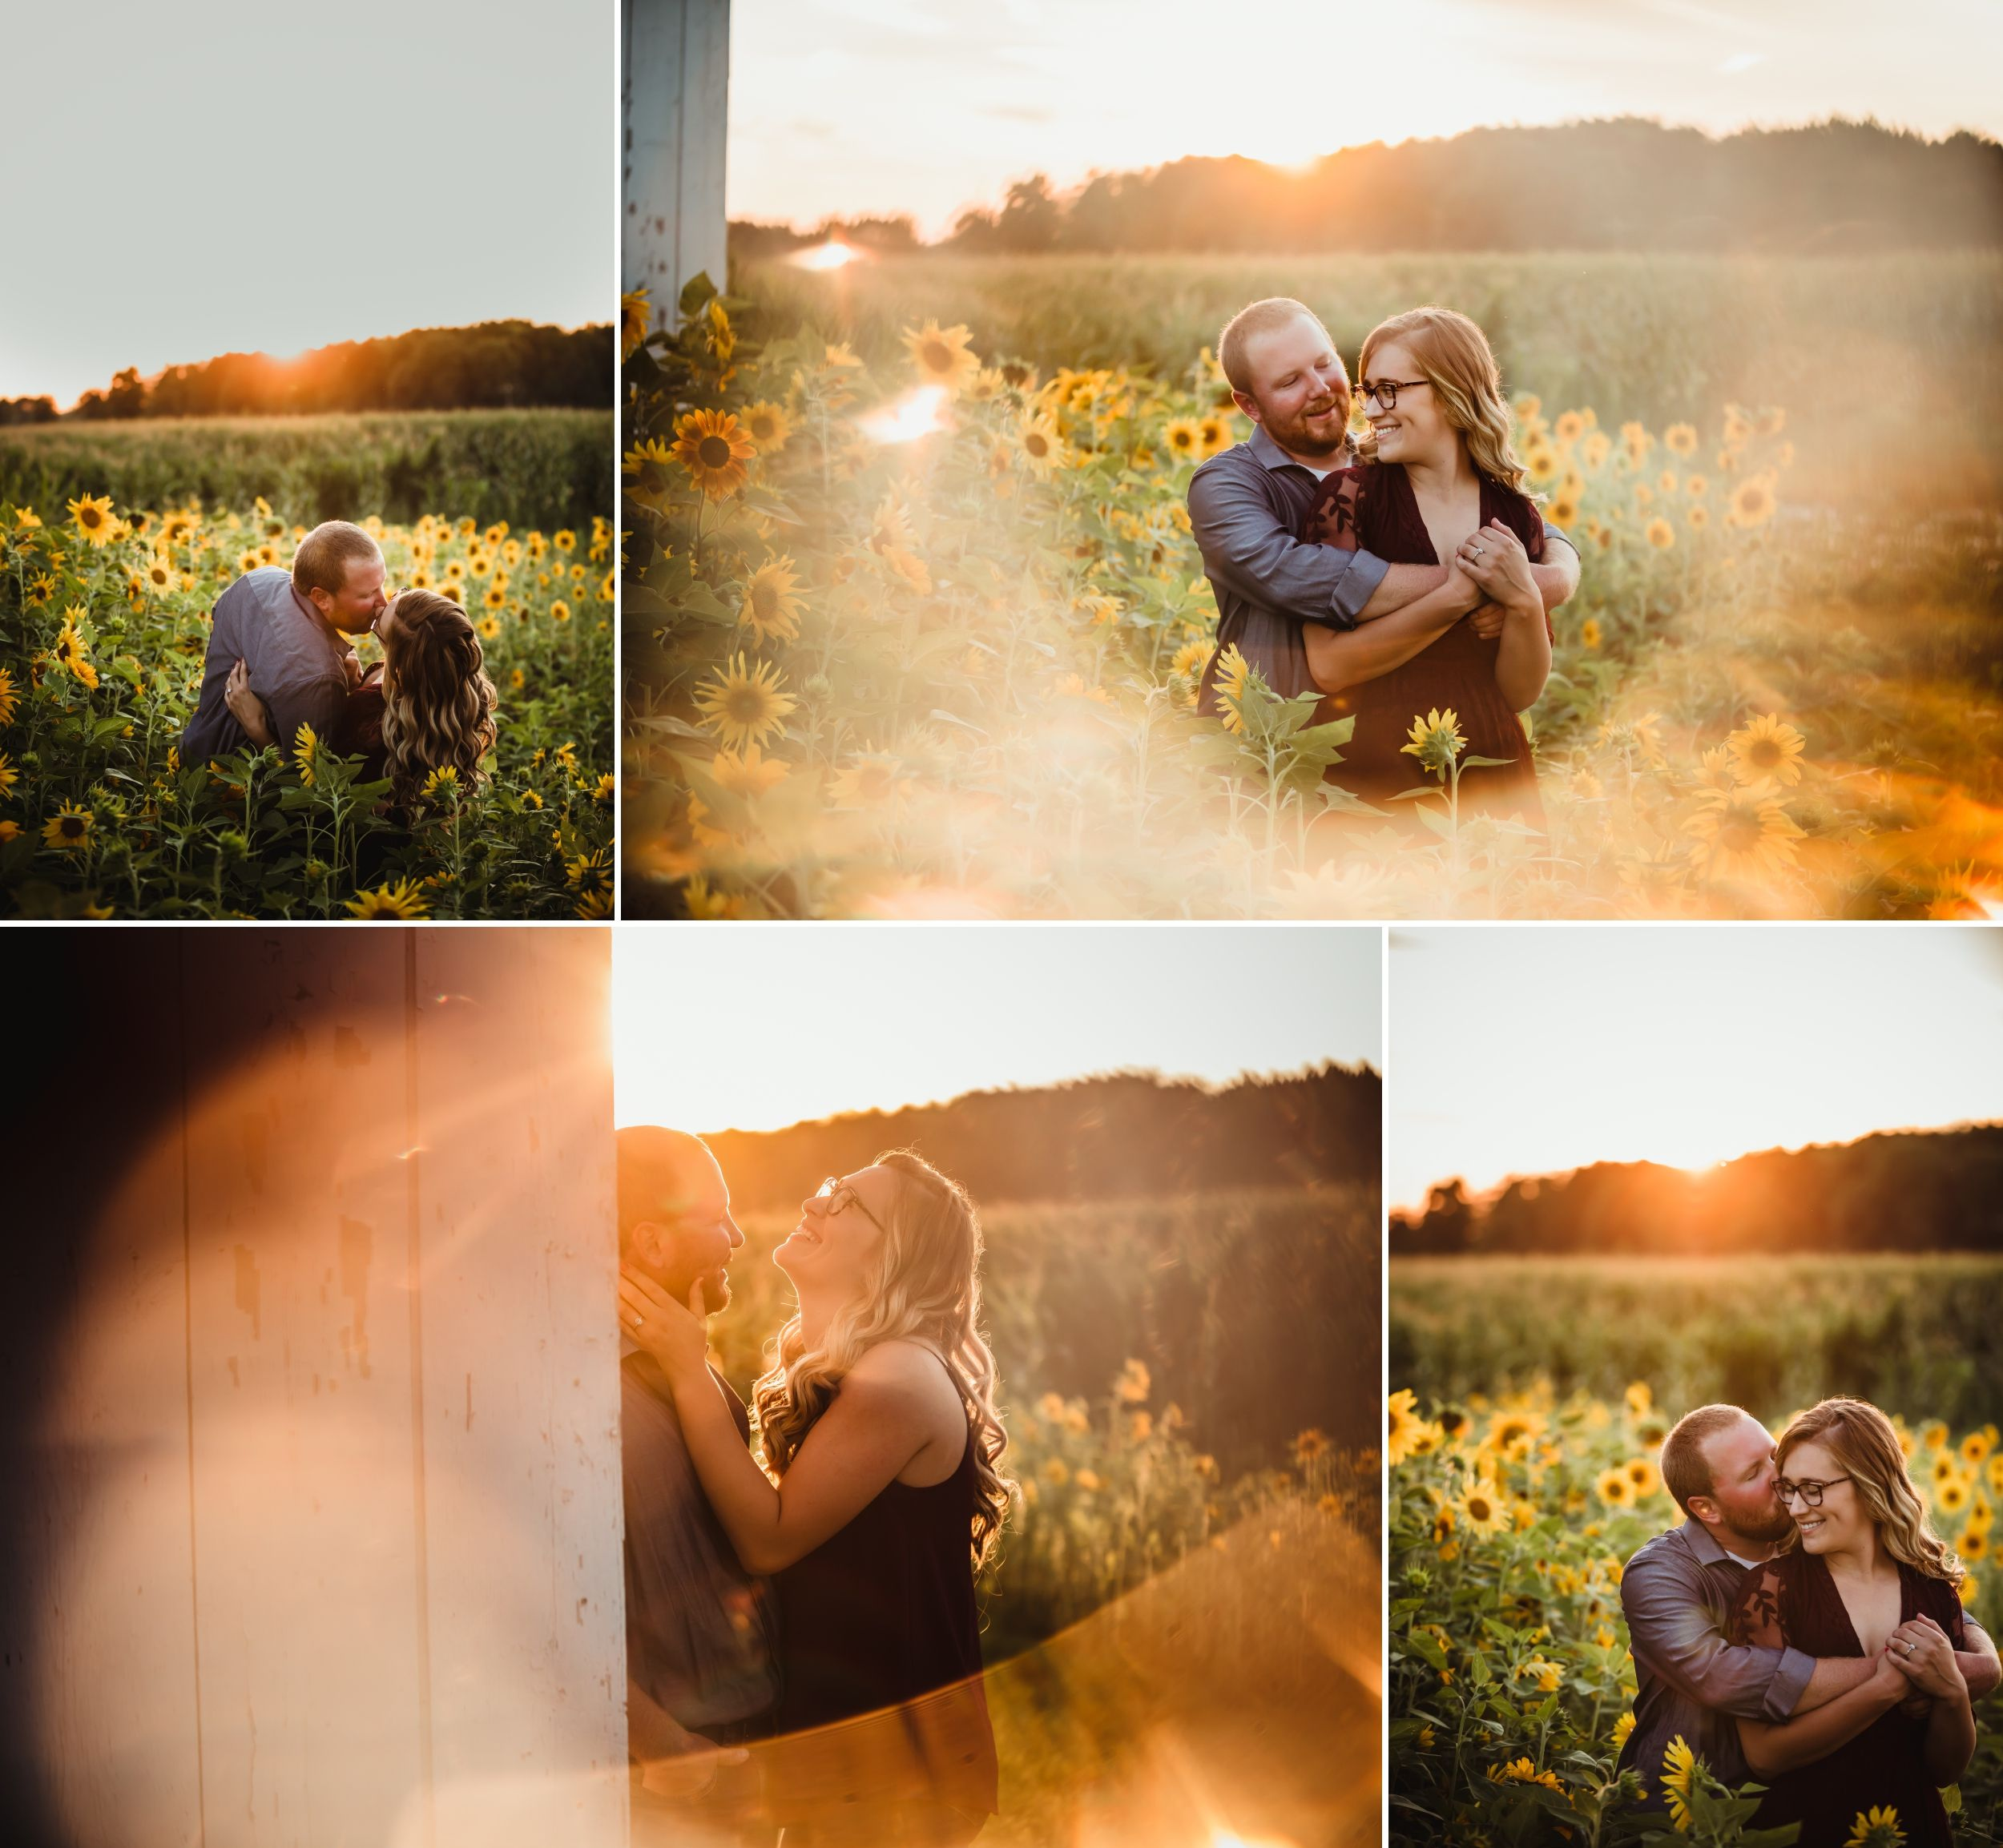 Collage of a man and woman kissing, laughing, and embracing in a sunflower field at sunset.